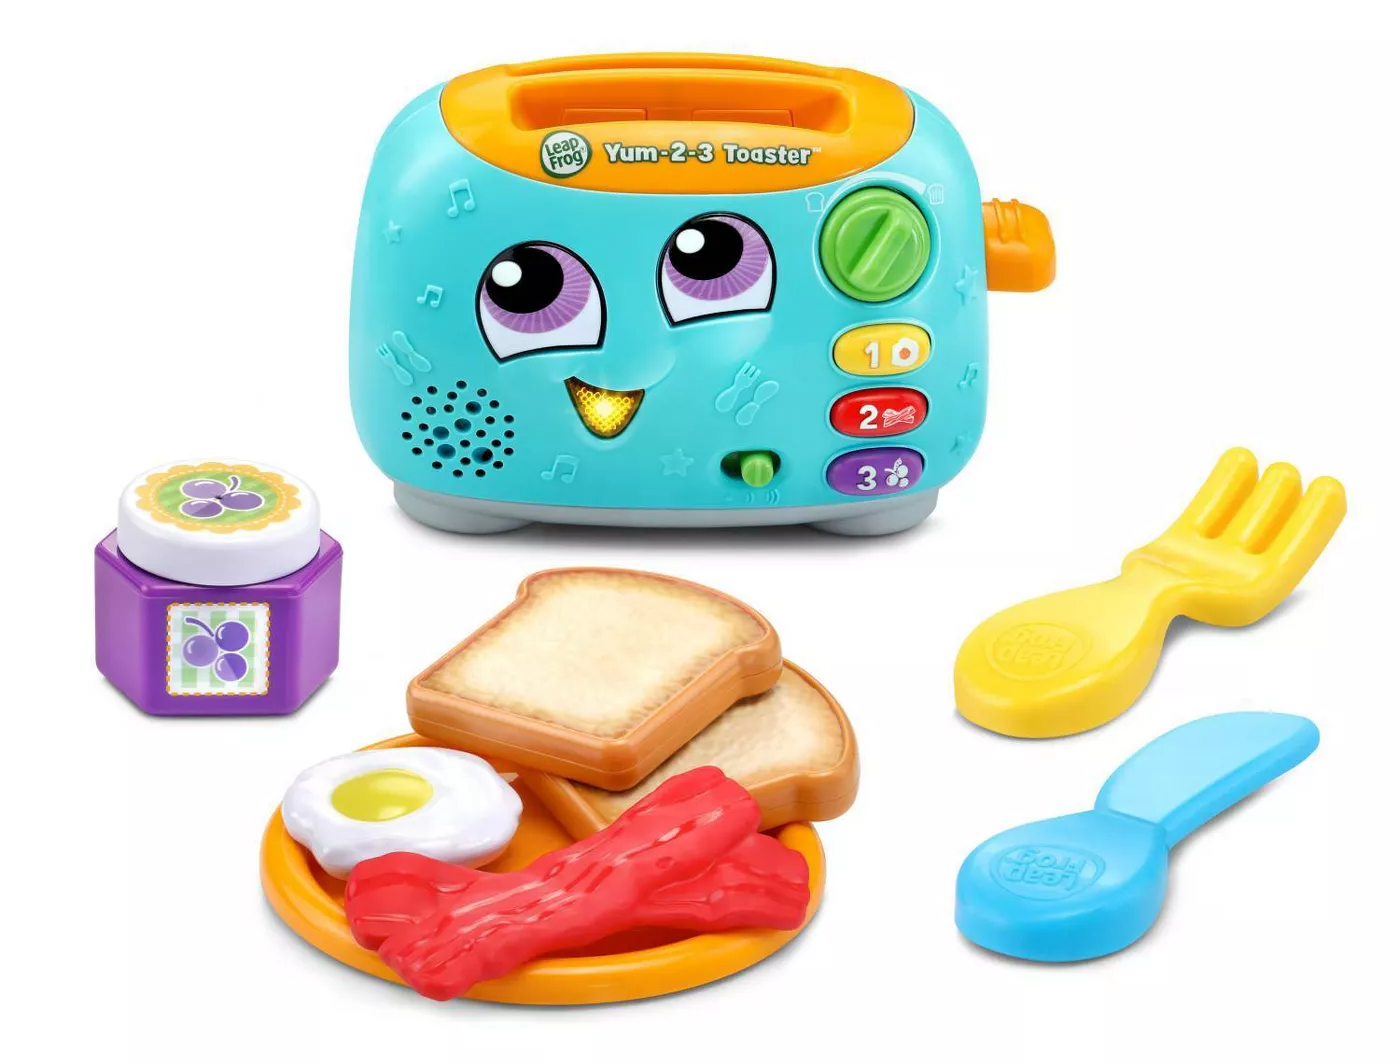 Teal and orange plastic toaster toy with a face along with a plate of toy food and utensils